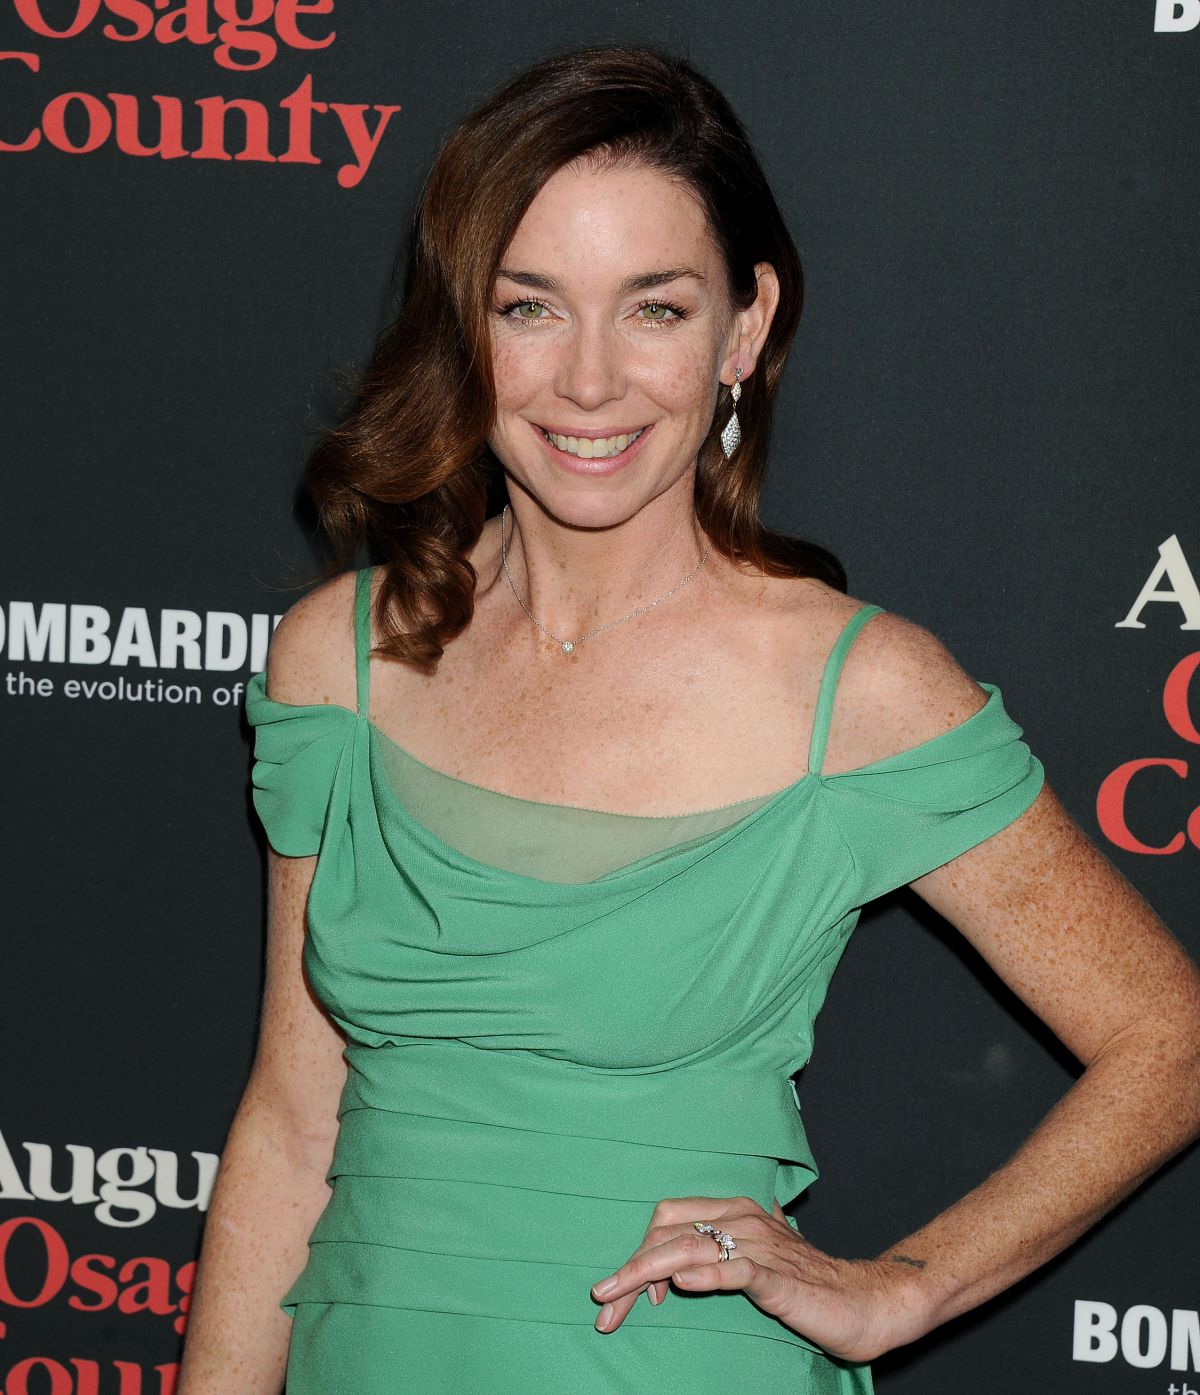 julianne nicholson movies and tv shows